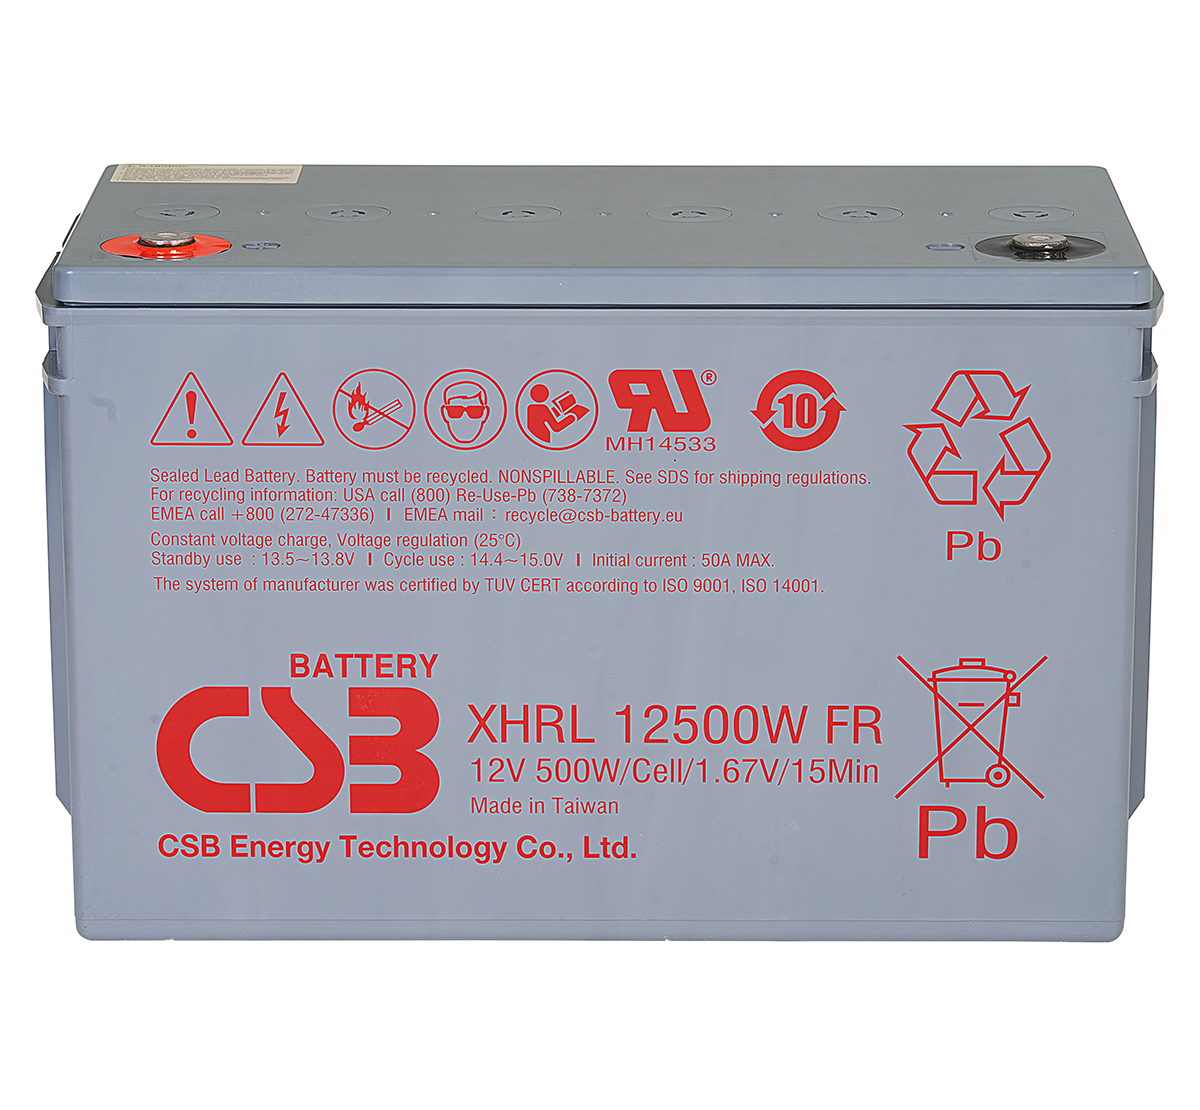 CSB XHRL12500W 500W Extreme High Rate Long Life Battery